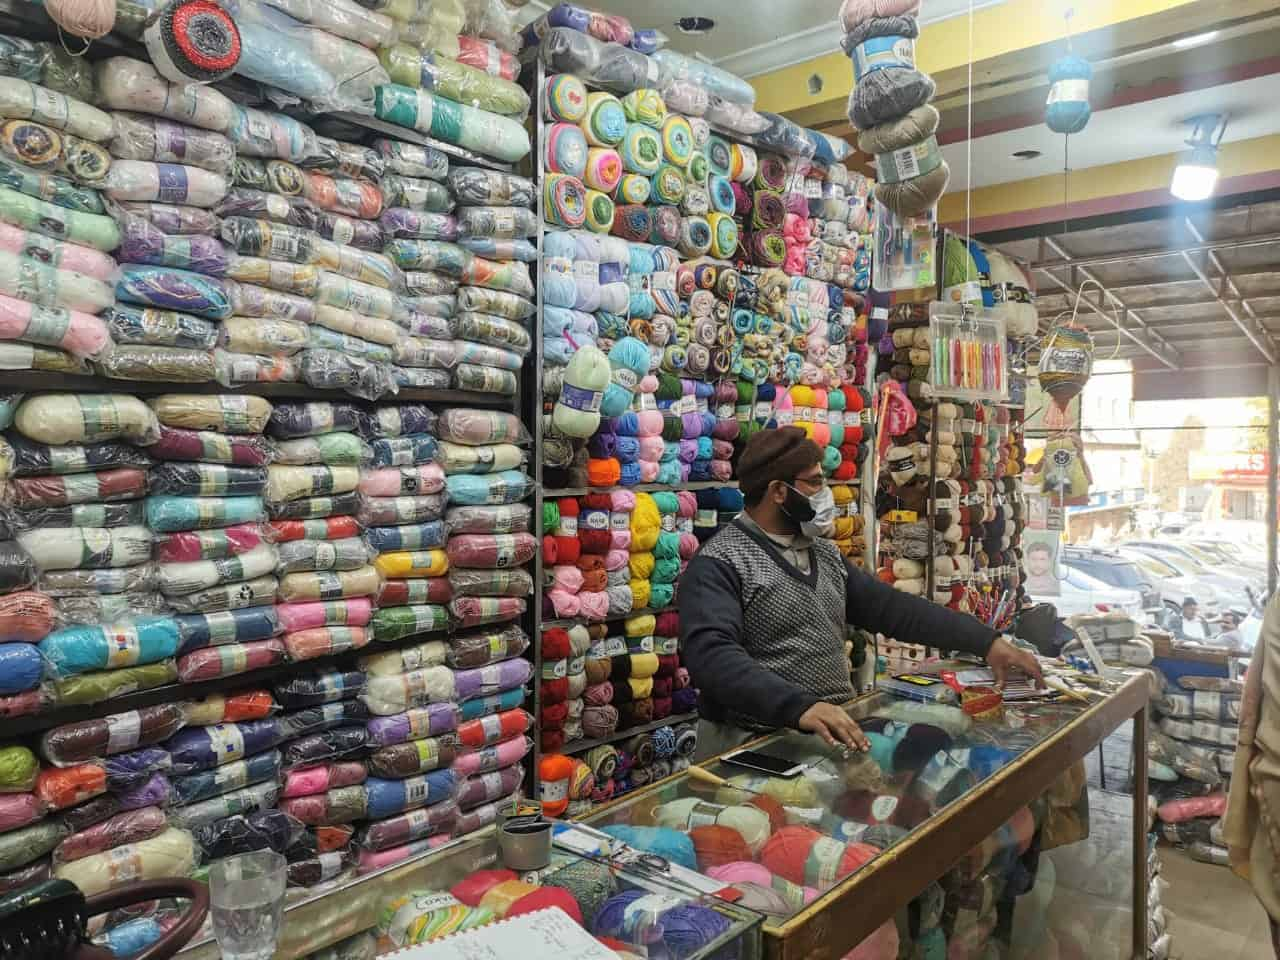 A Pakistani man wearing a face mask standing in a shop of colorful yarn.